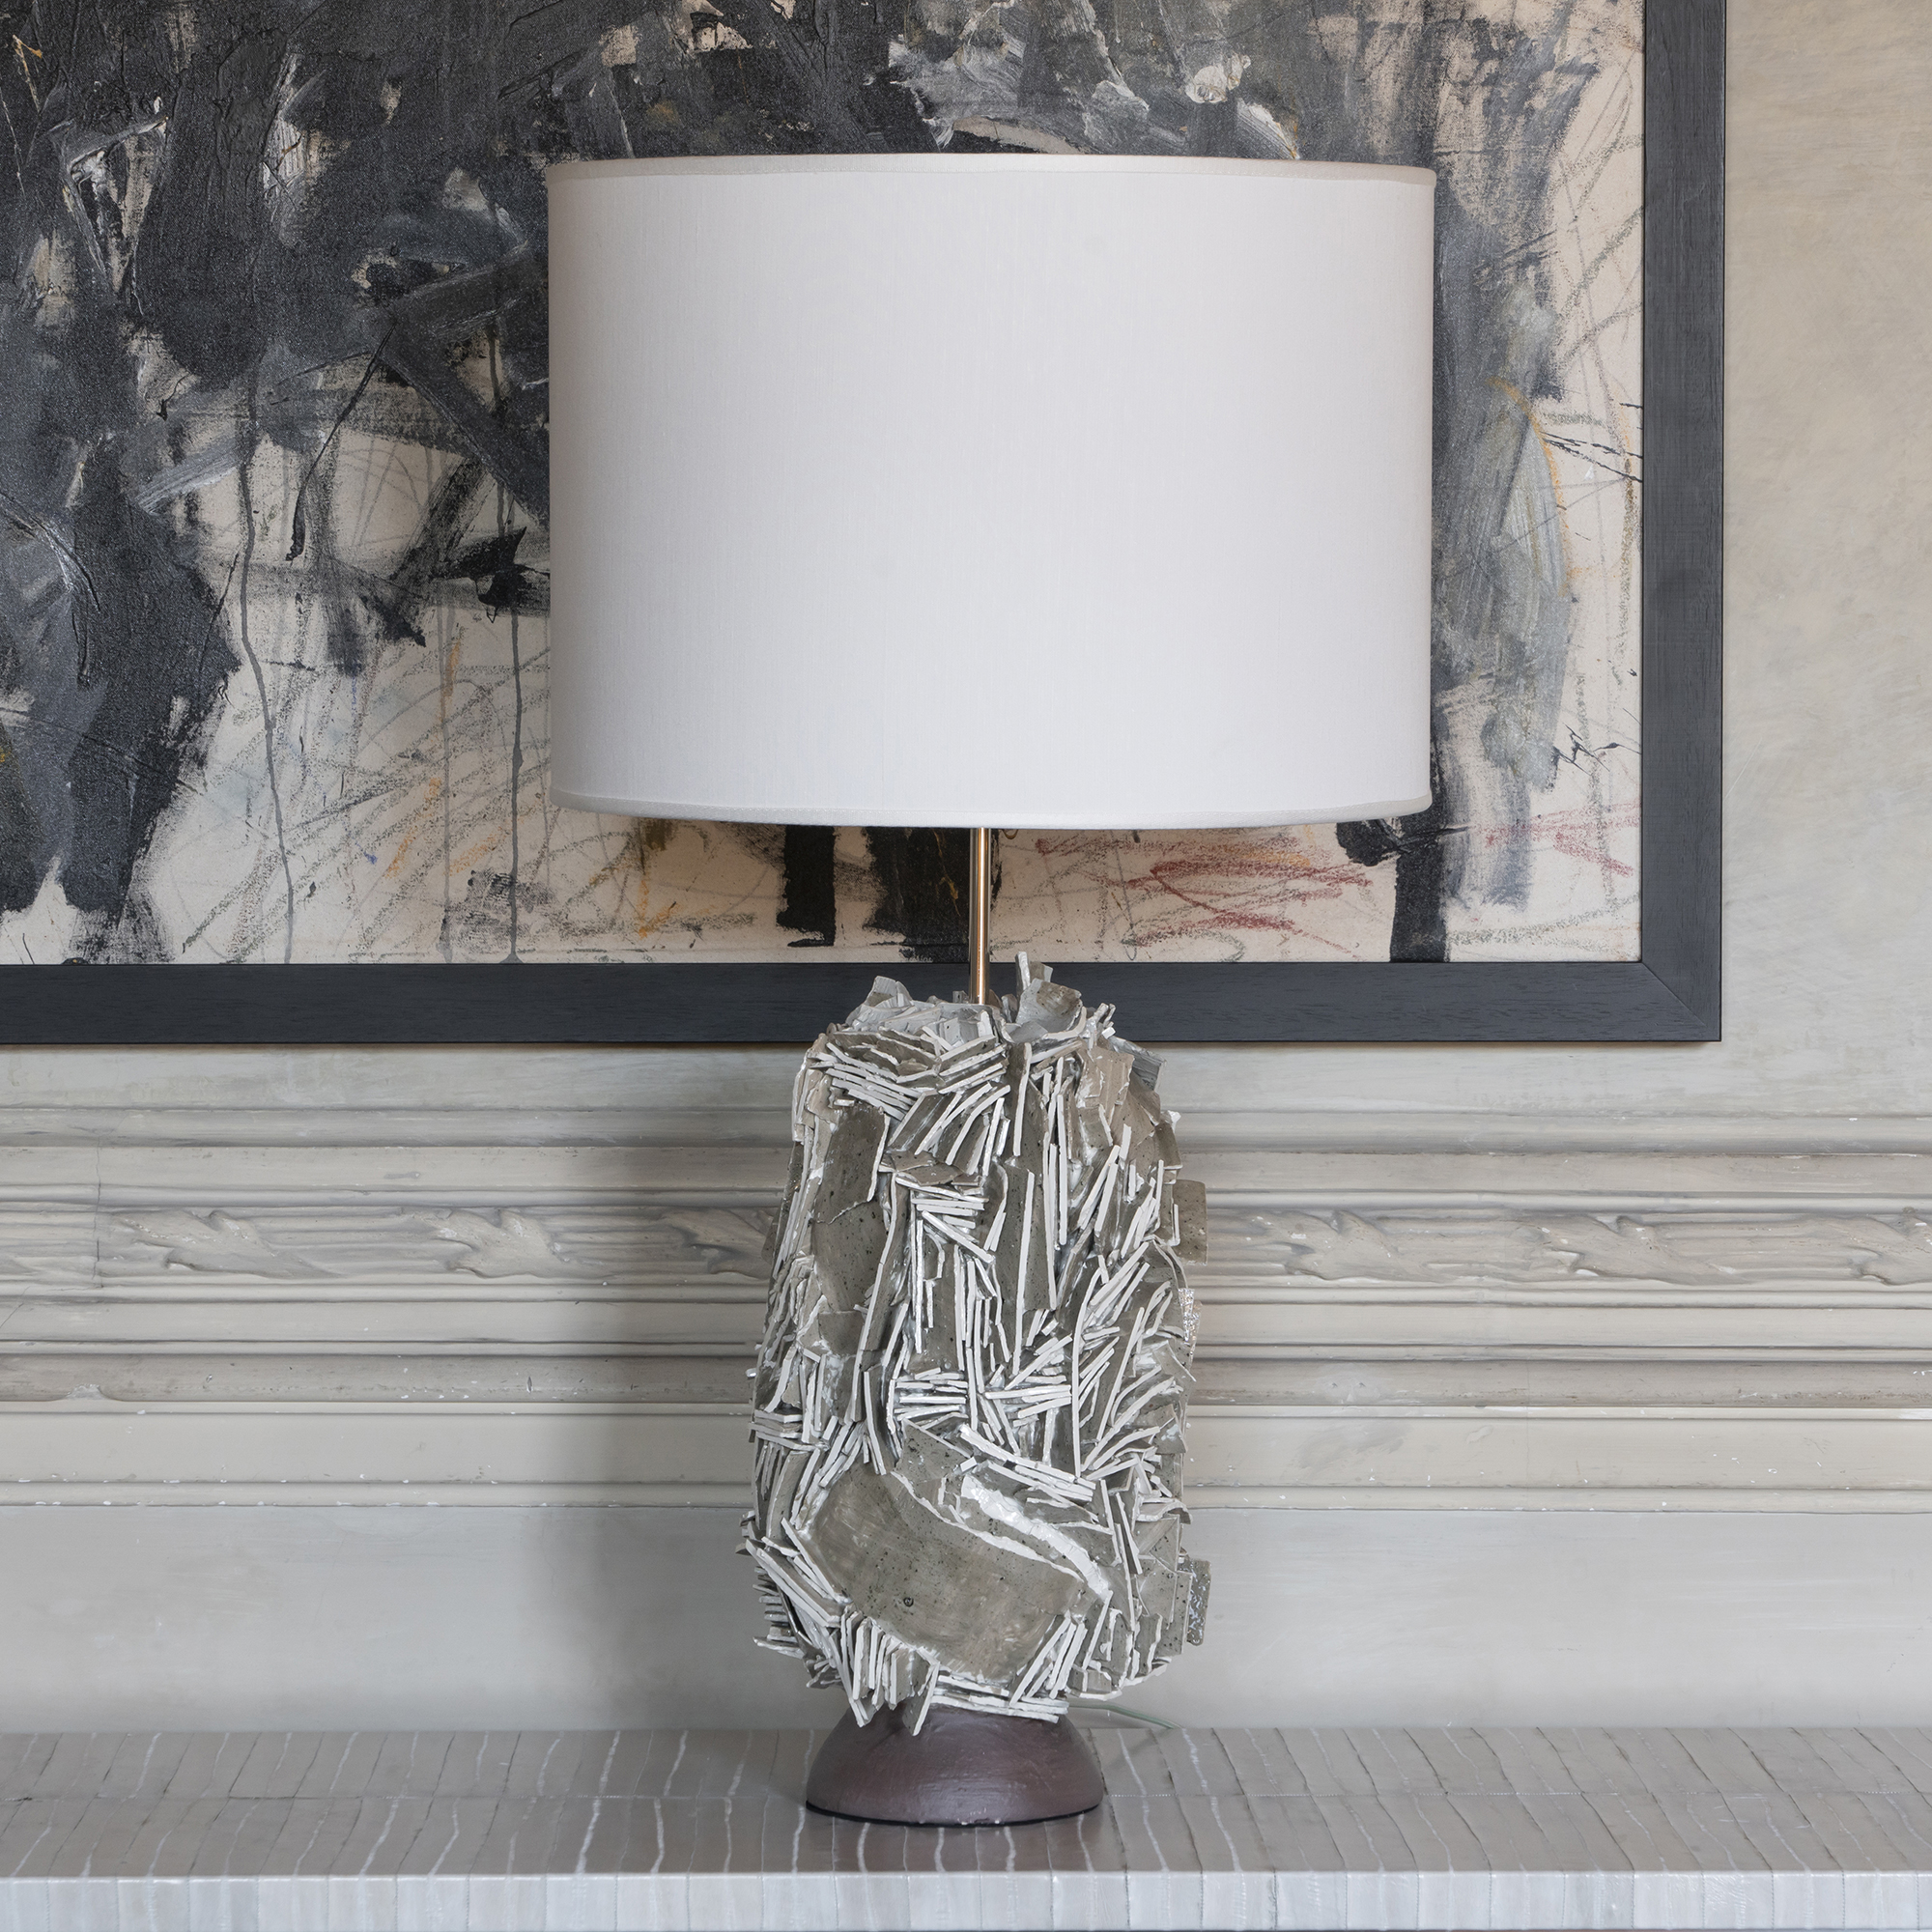 Artistic Taupe Glazed And Raw Ceramic Table Lamp, Italy 2020